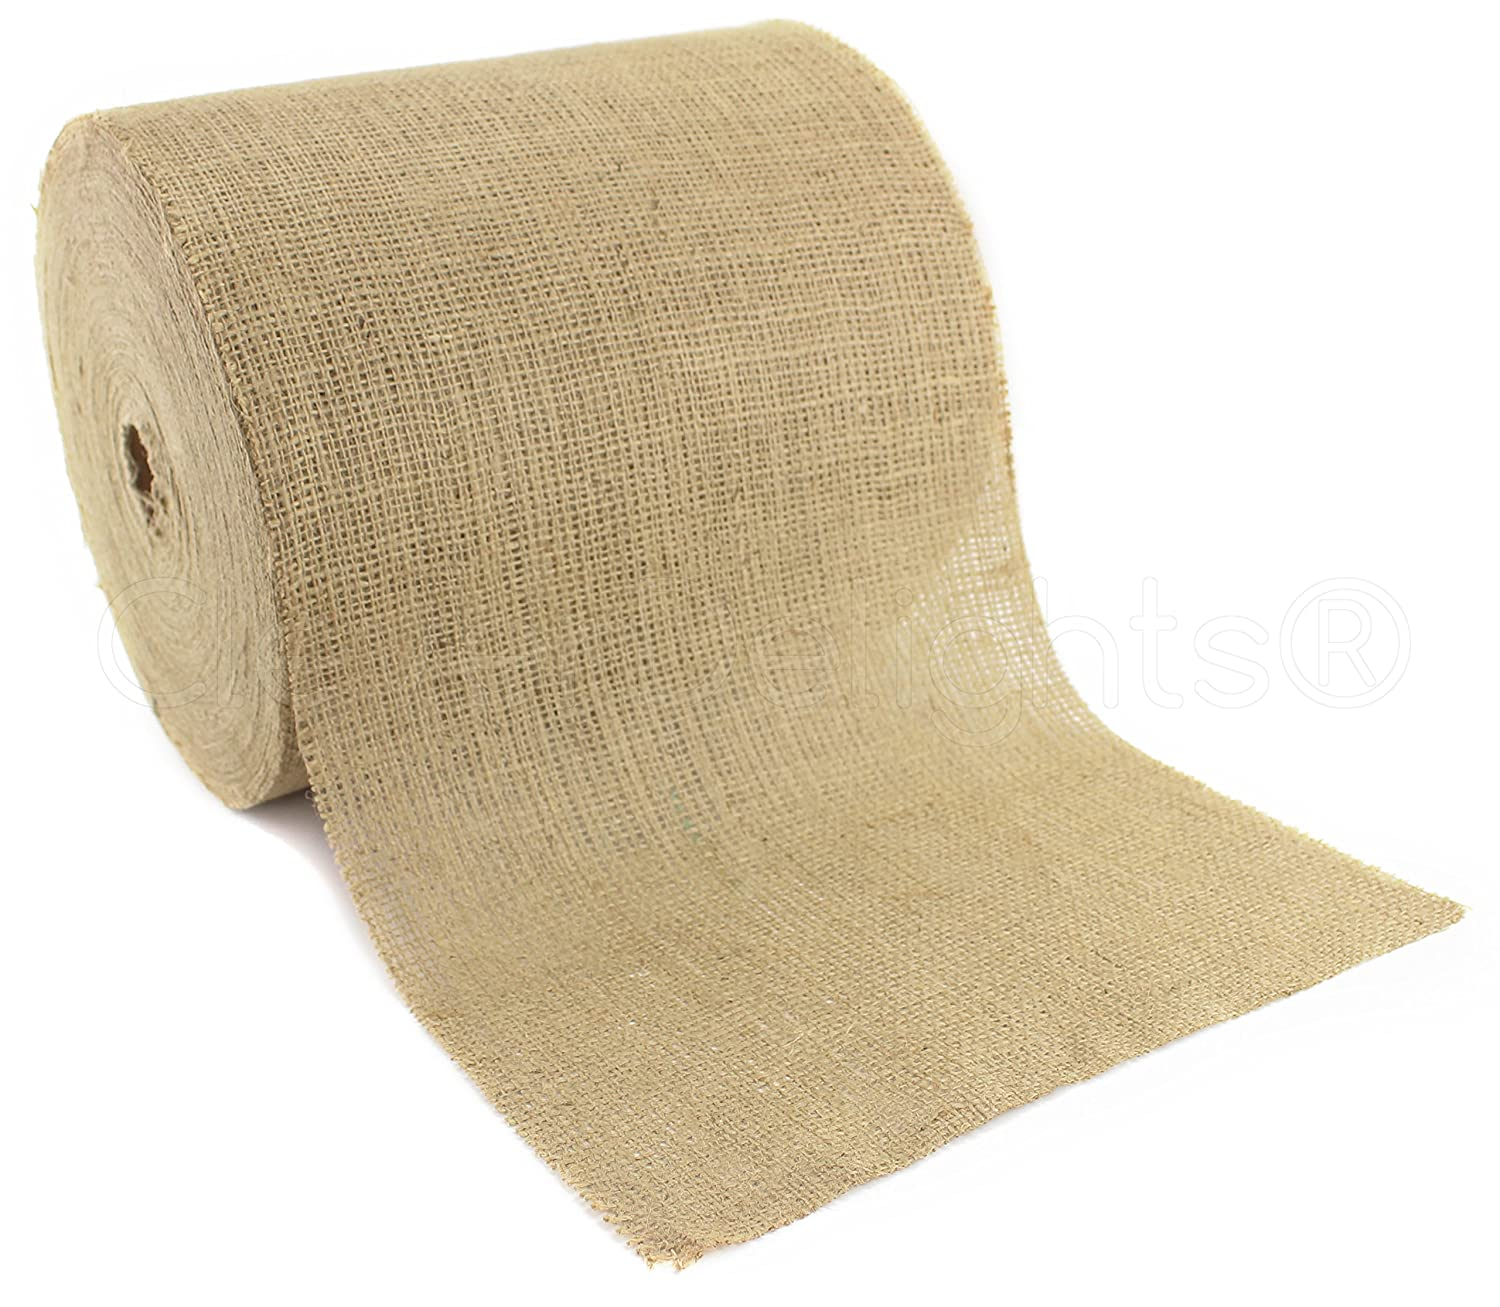 """CleverDelights 12"""" Natural Burlap Roll - 50 Yards - Eco-Friendly Jute Burlap Fabric - Unfinished Edges - 12 Inch"""